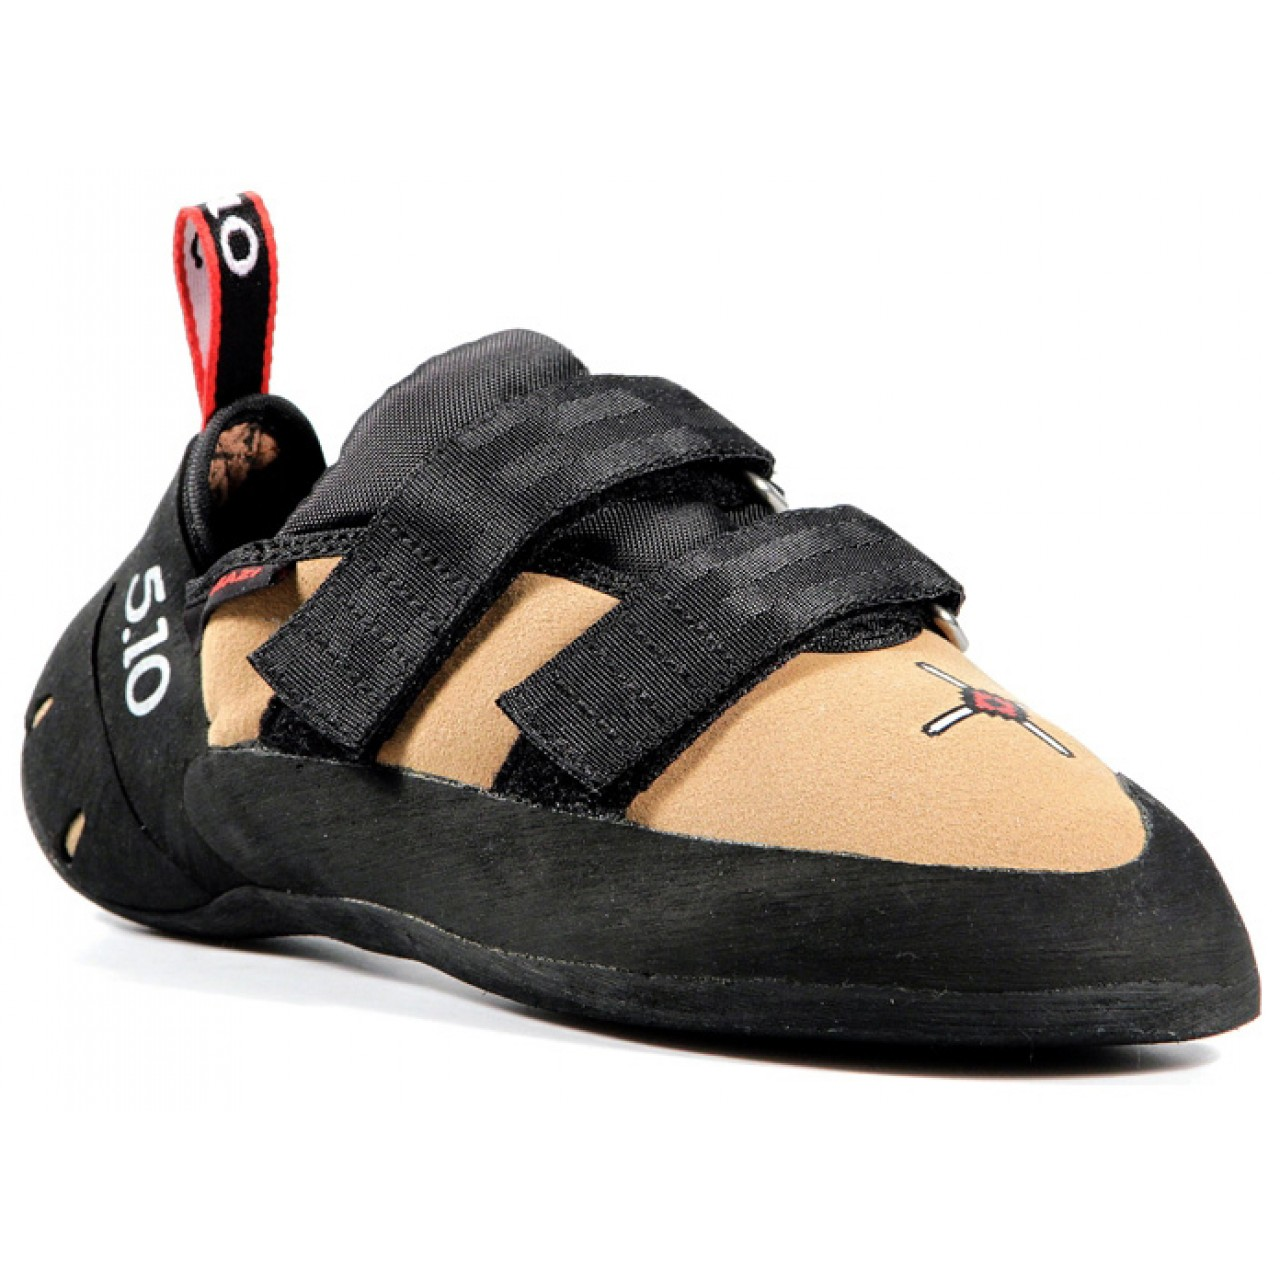 Five Ten Anasazi Lace Climbing Shoe